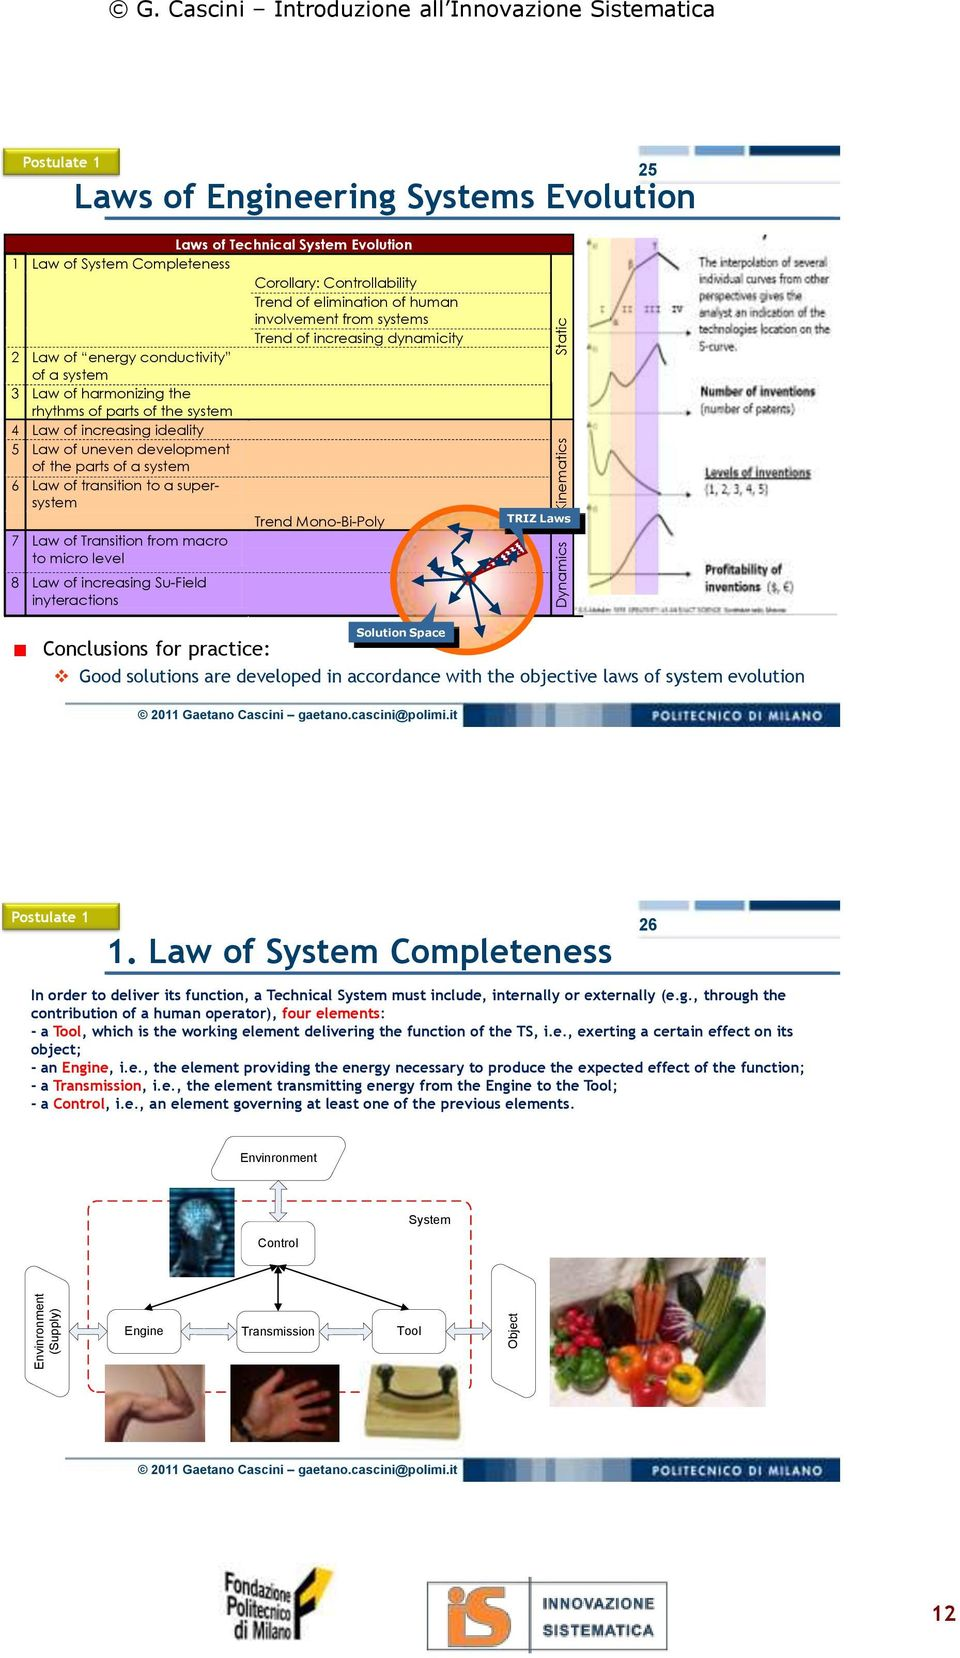 of elimination of human involvement from systems Trend of increasing dynamicity 2 Law of energy conductivity of a system 3 Law of harmonizing the rhythms of parts of the system 4 Law of increasing